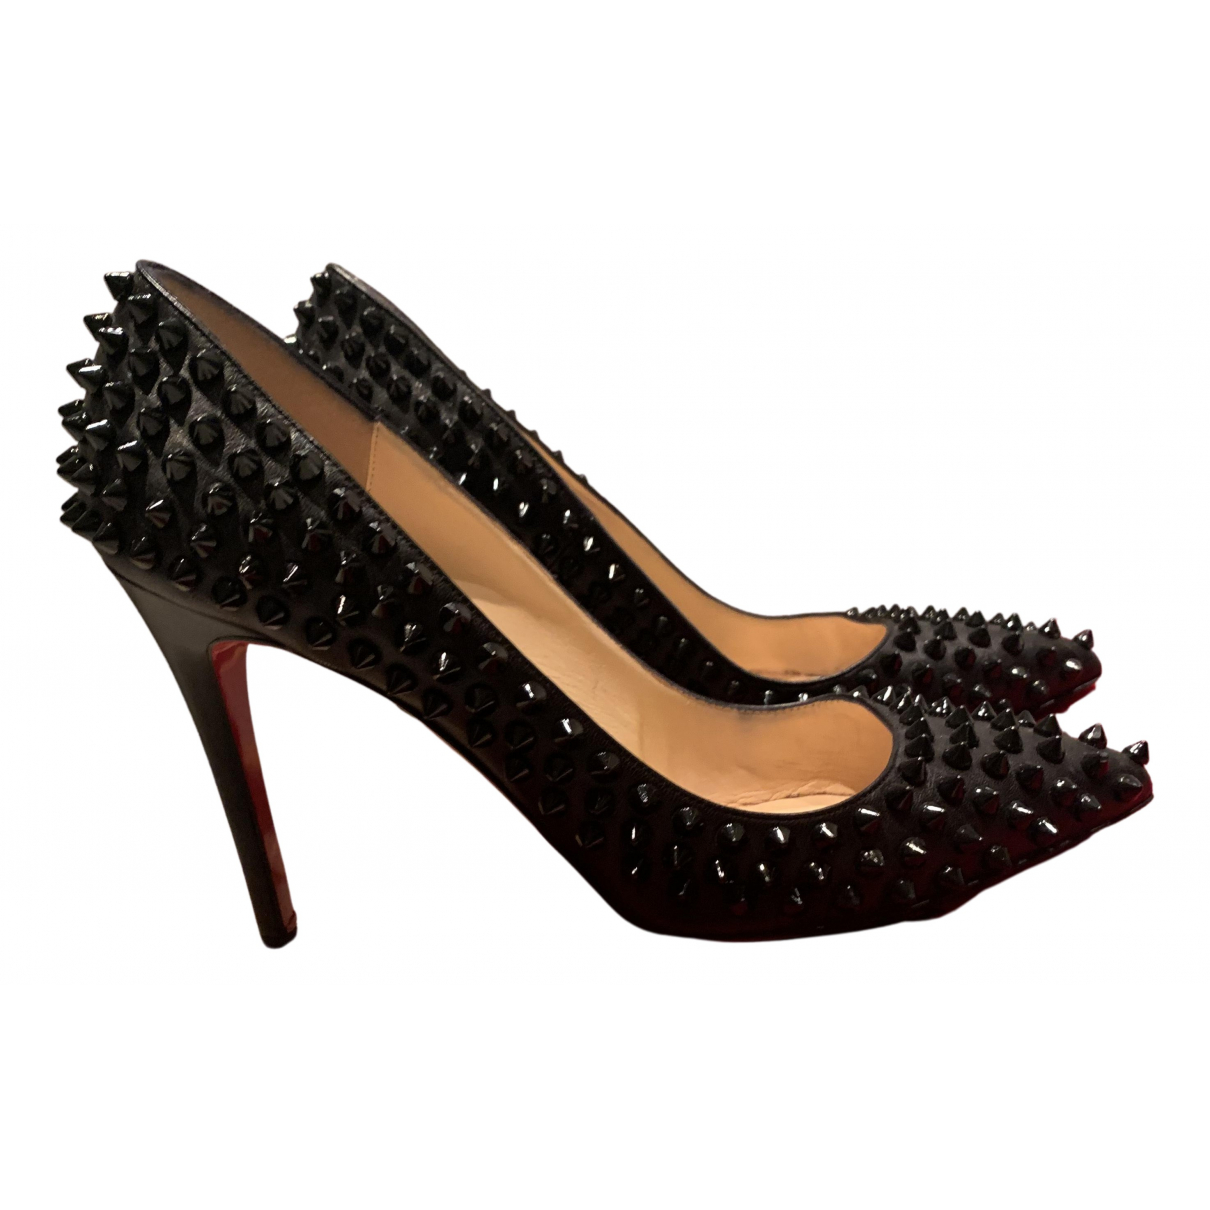 Christian Louboutin Pigalle Black Leather Heels for Women 37.5 EU